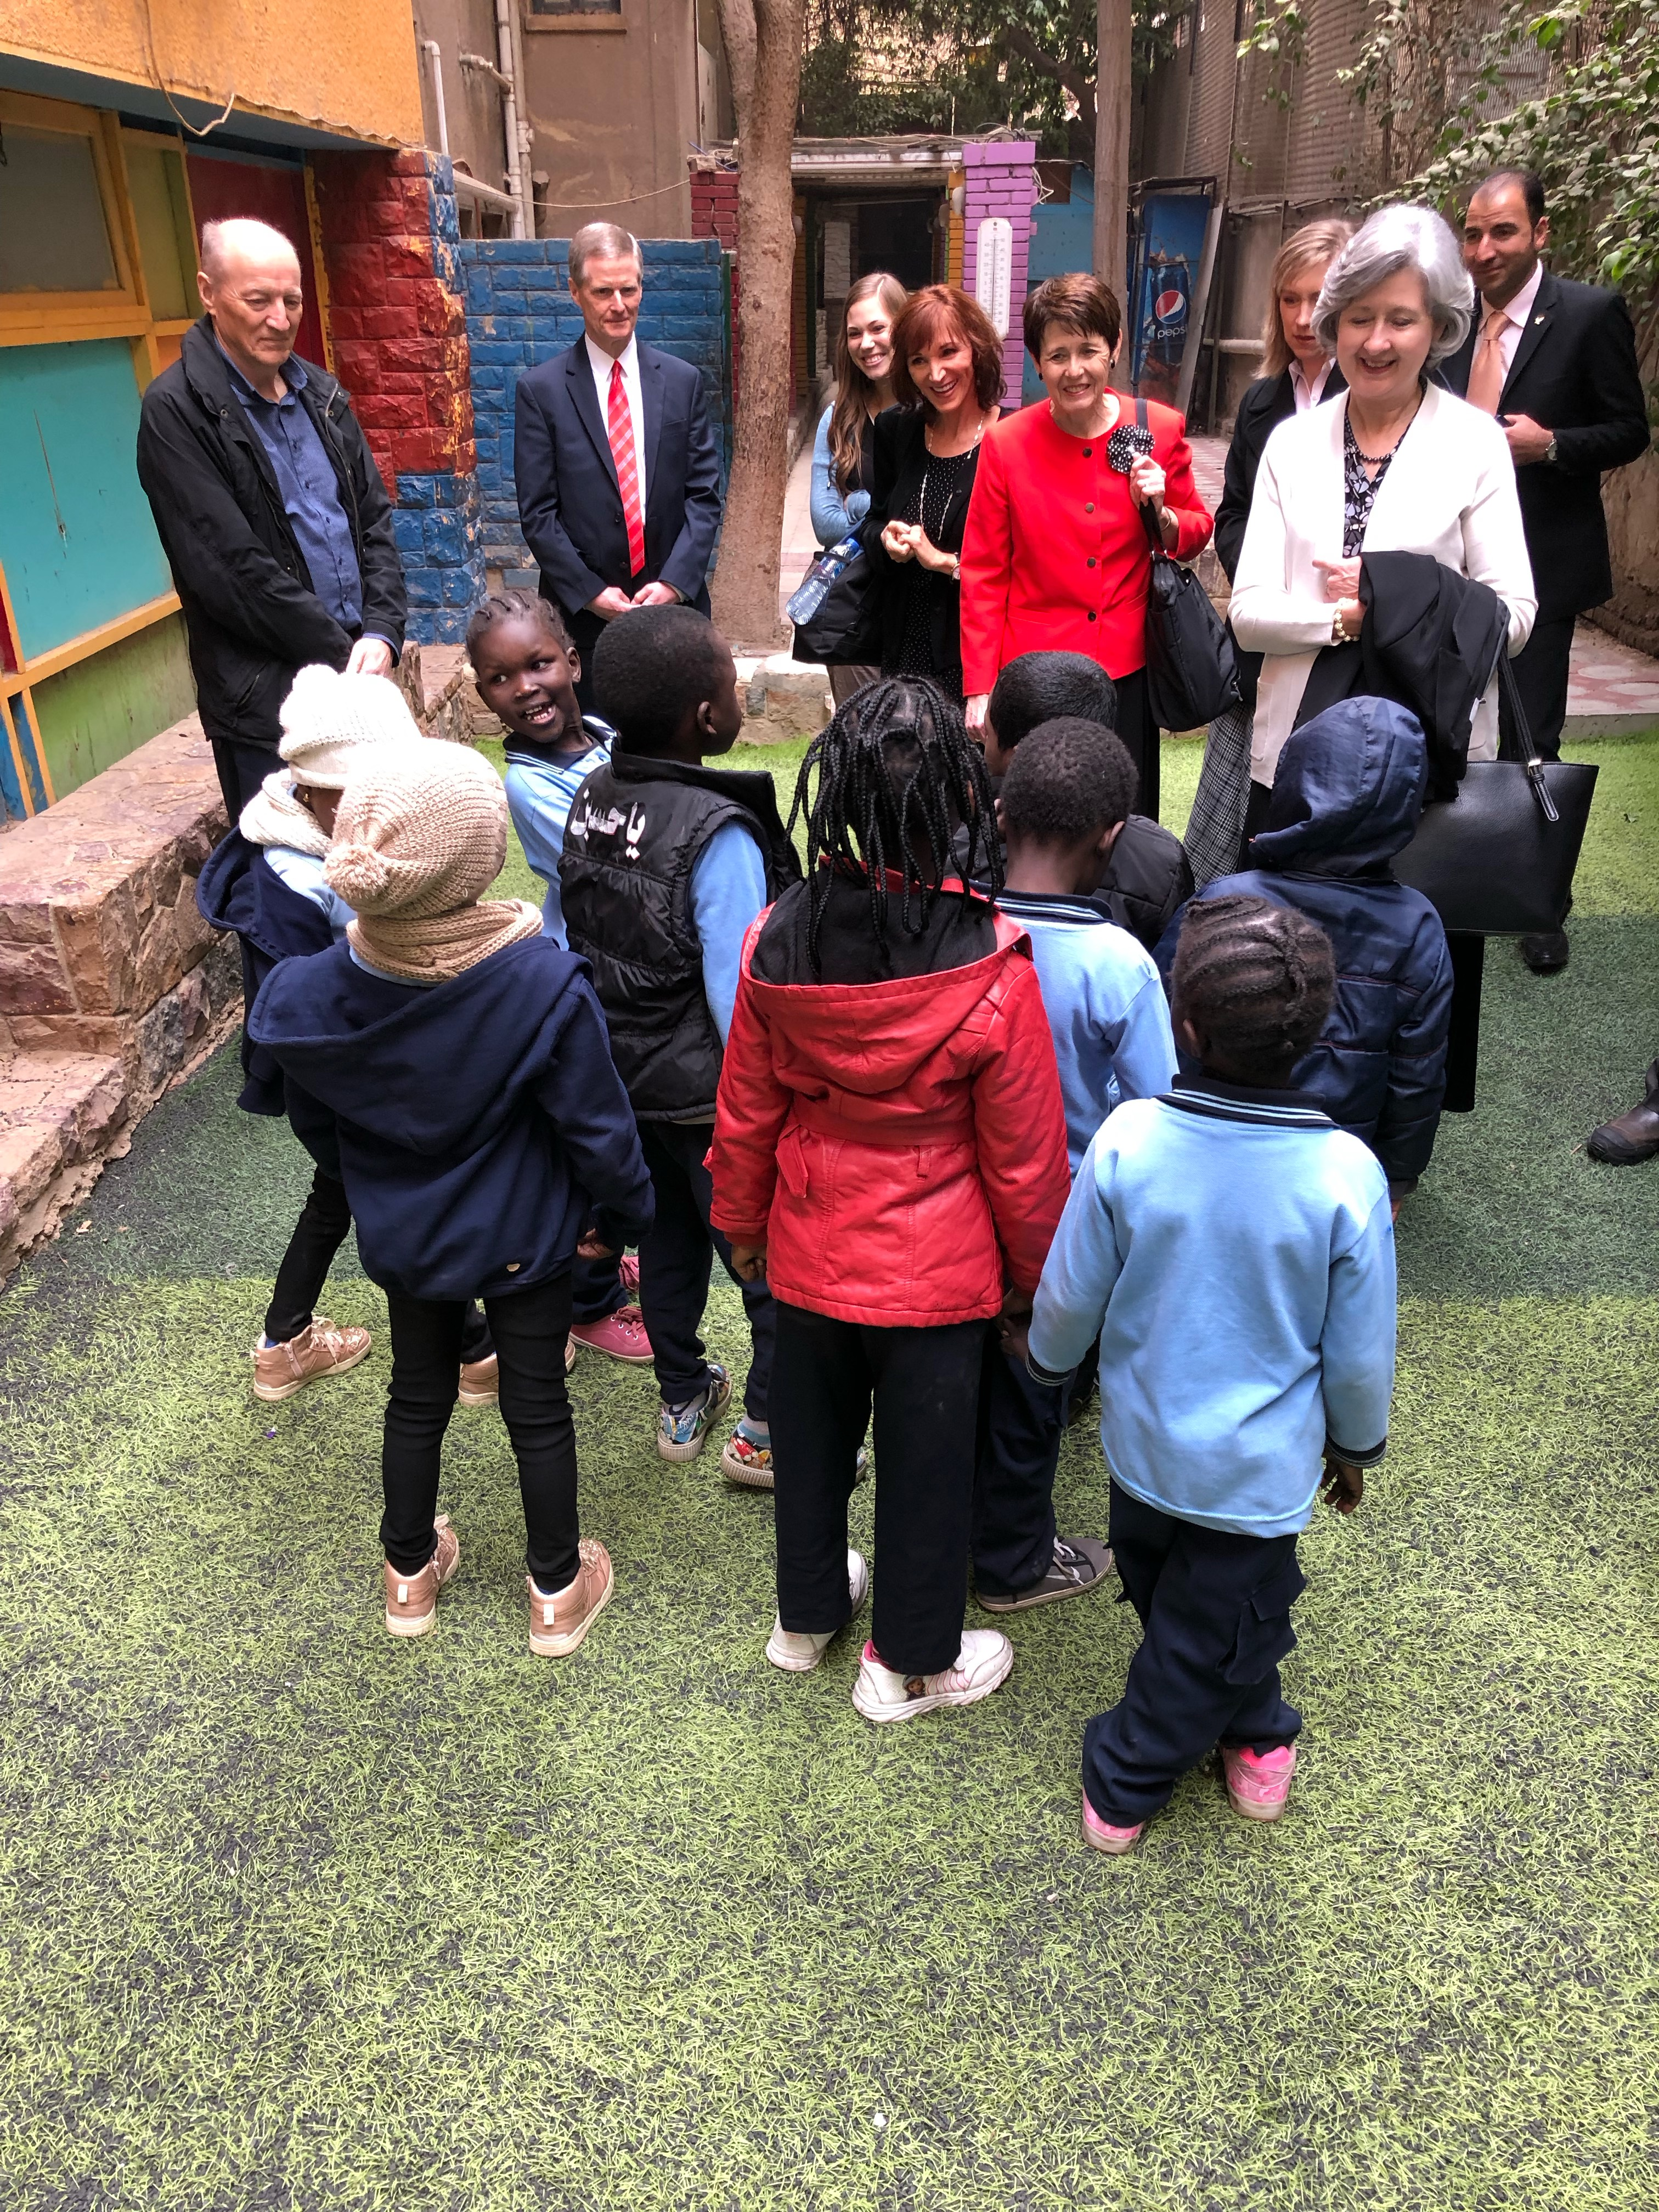 Children from the African Hope Learning Centre in Cairo, Egypt, gather to greet Elder David A. Bednar, second from left, Sister Susan Bednar fourth from right, and others guests on Wednesday, Jan. 23, 2019.